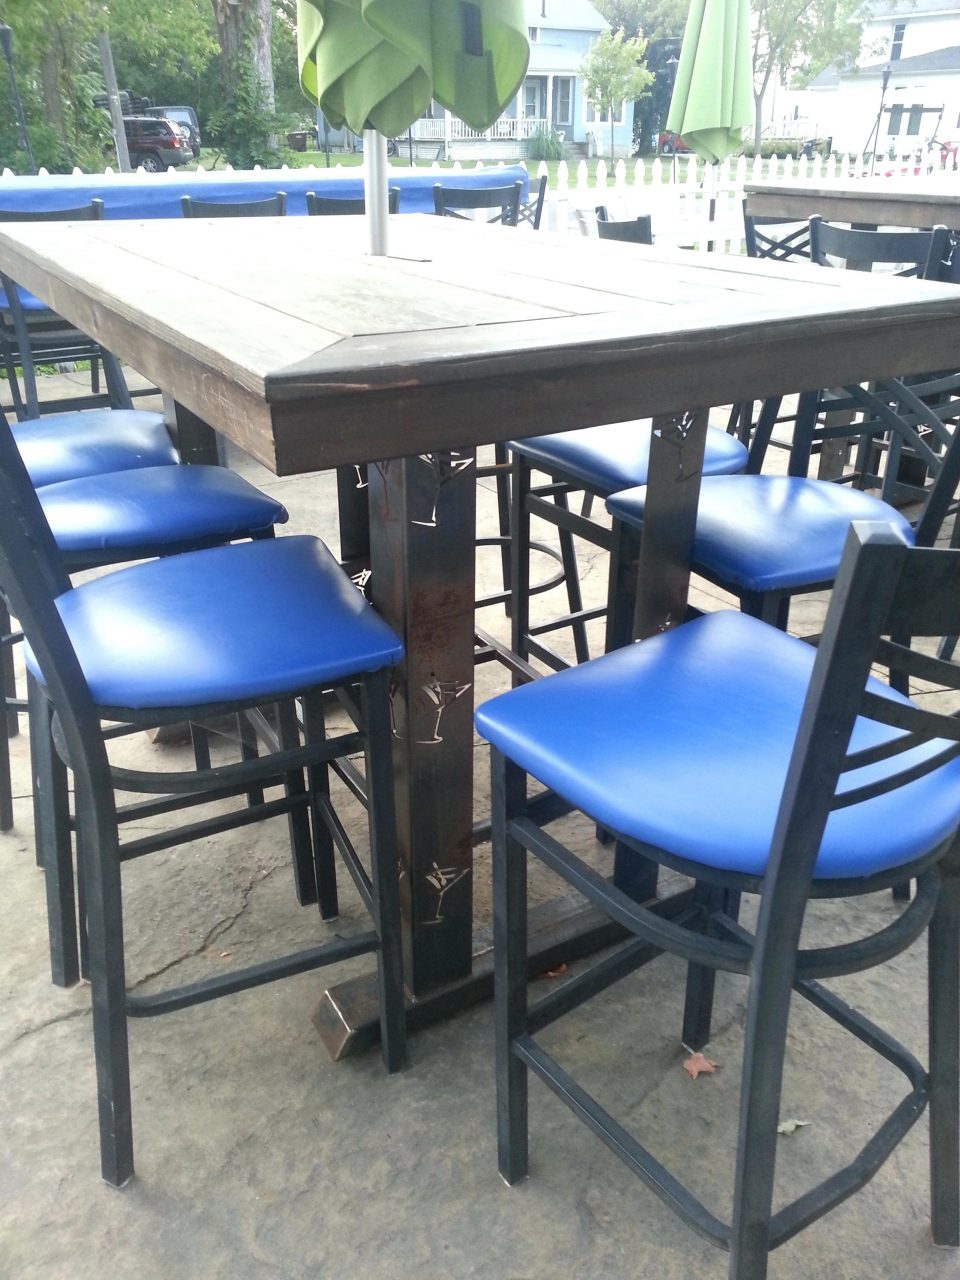 Patio Furniture Indianapolis Cheap Indiana Craigslist Outdoor